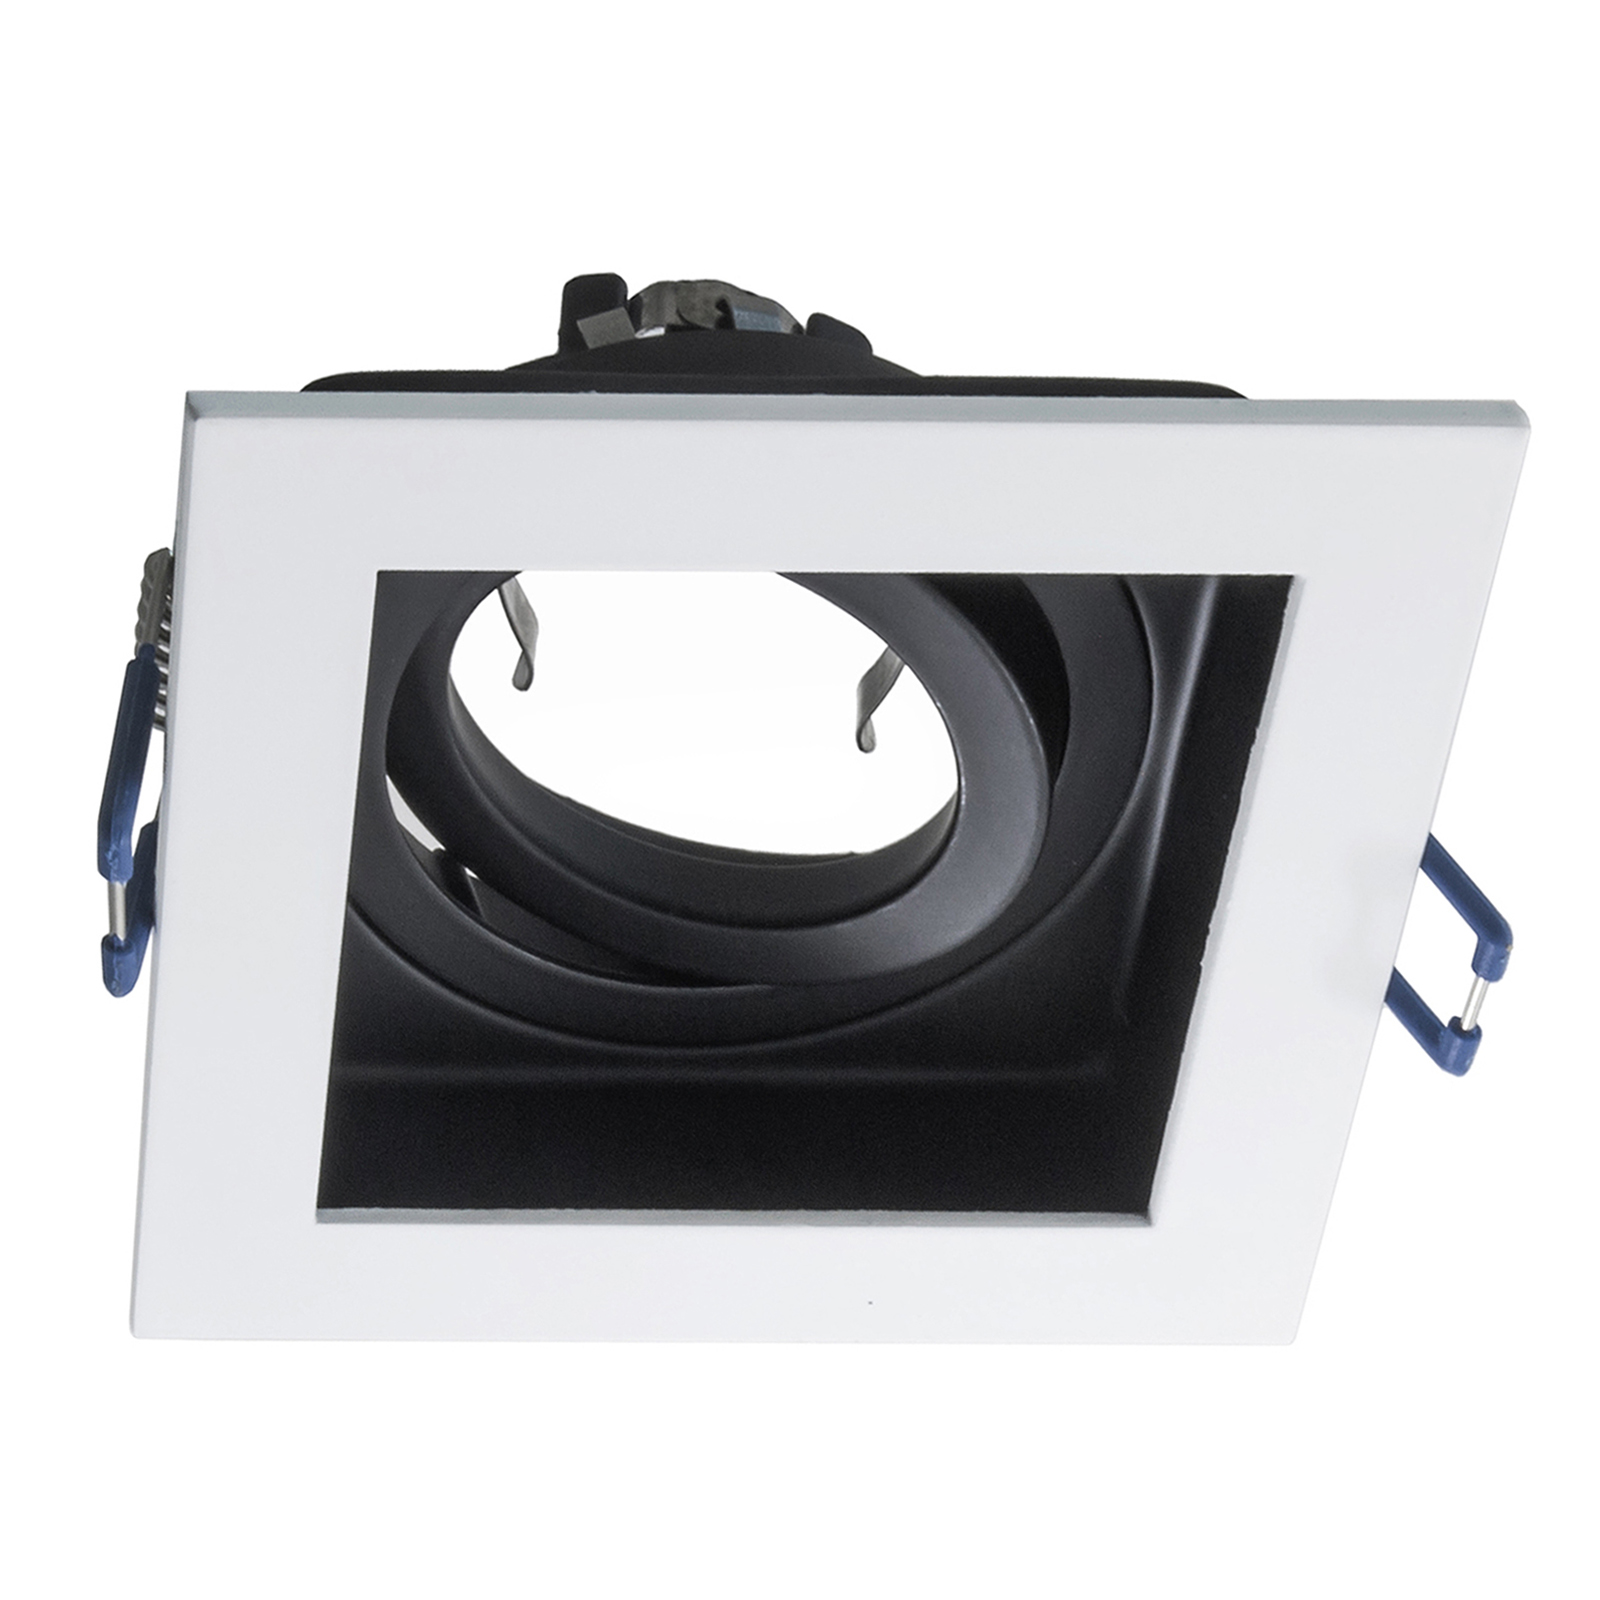 Port spotlight square recessed 9cm white black support led ceiling lighting GU10 GU5.3